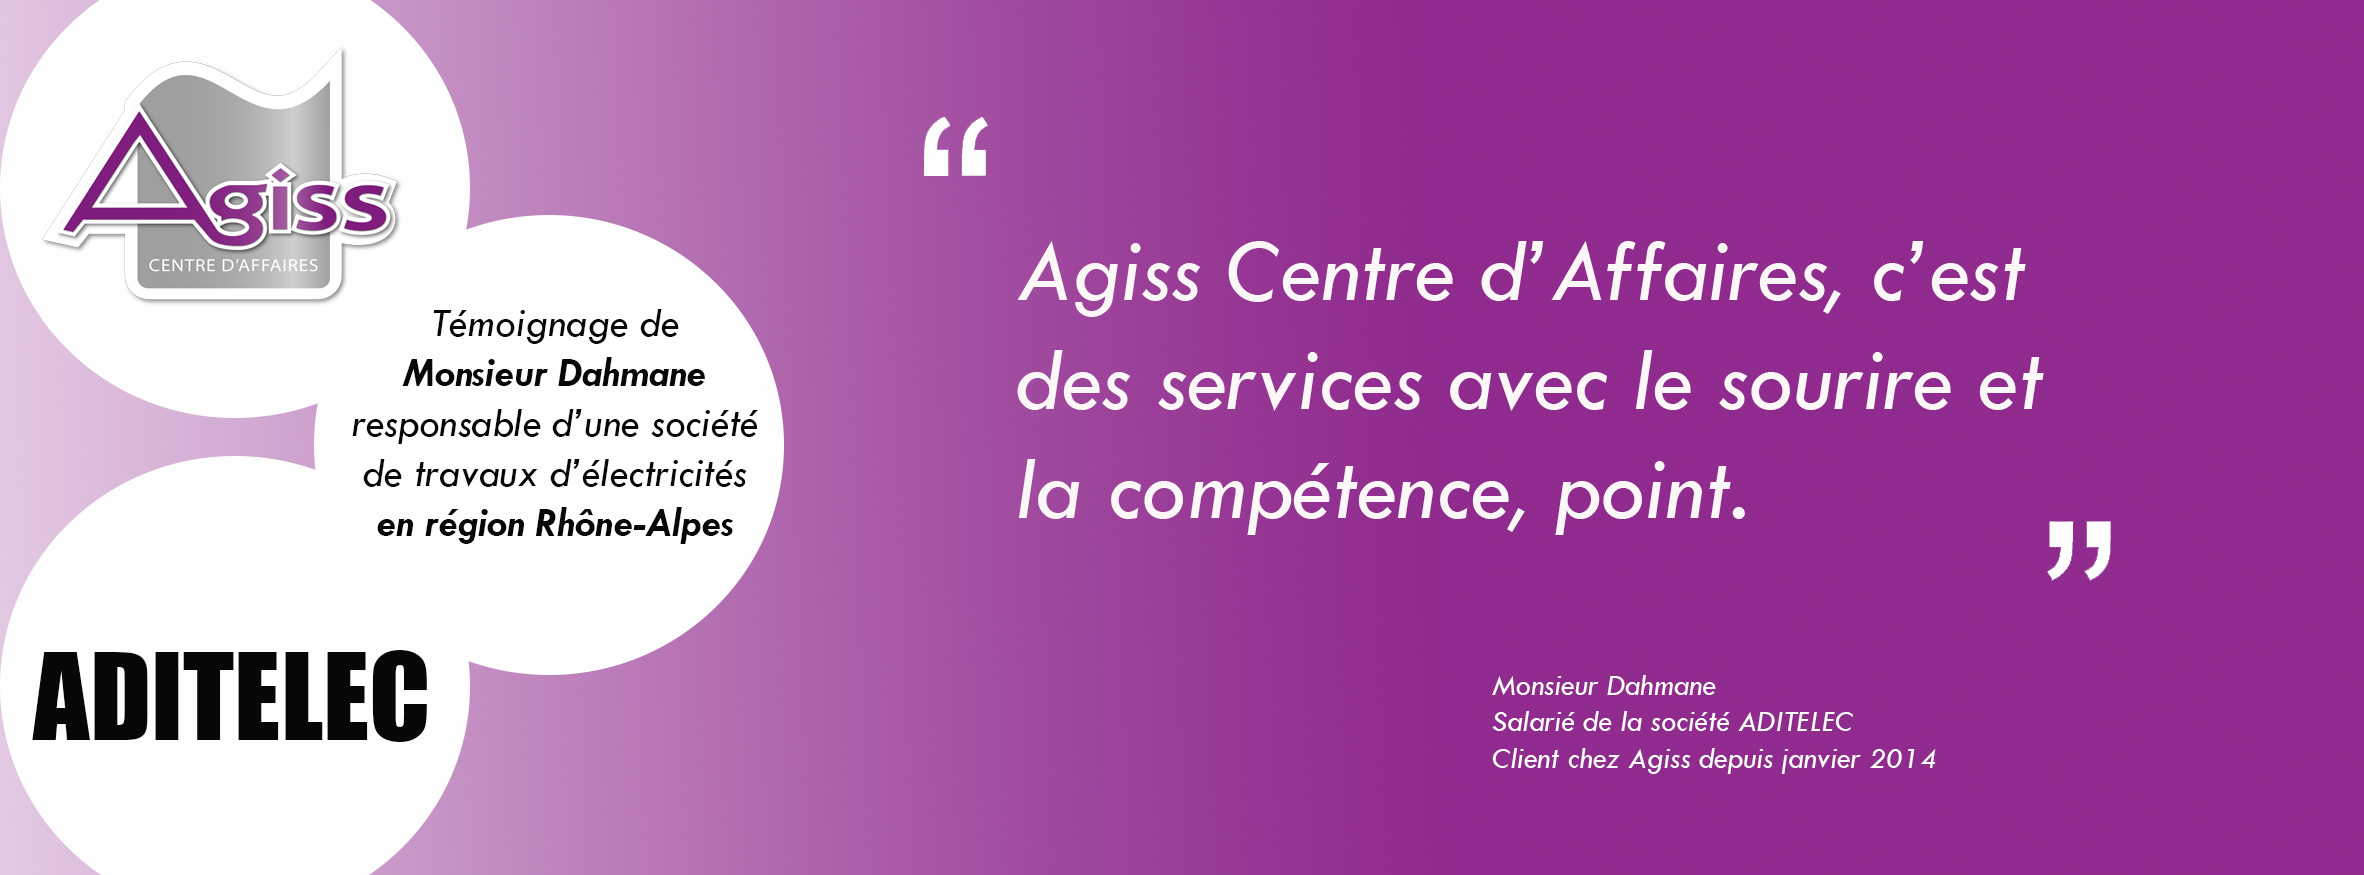 centre d'affaires agiss lyon 69